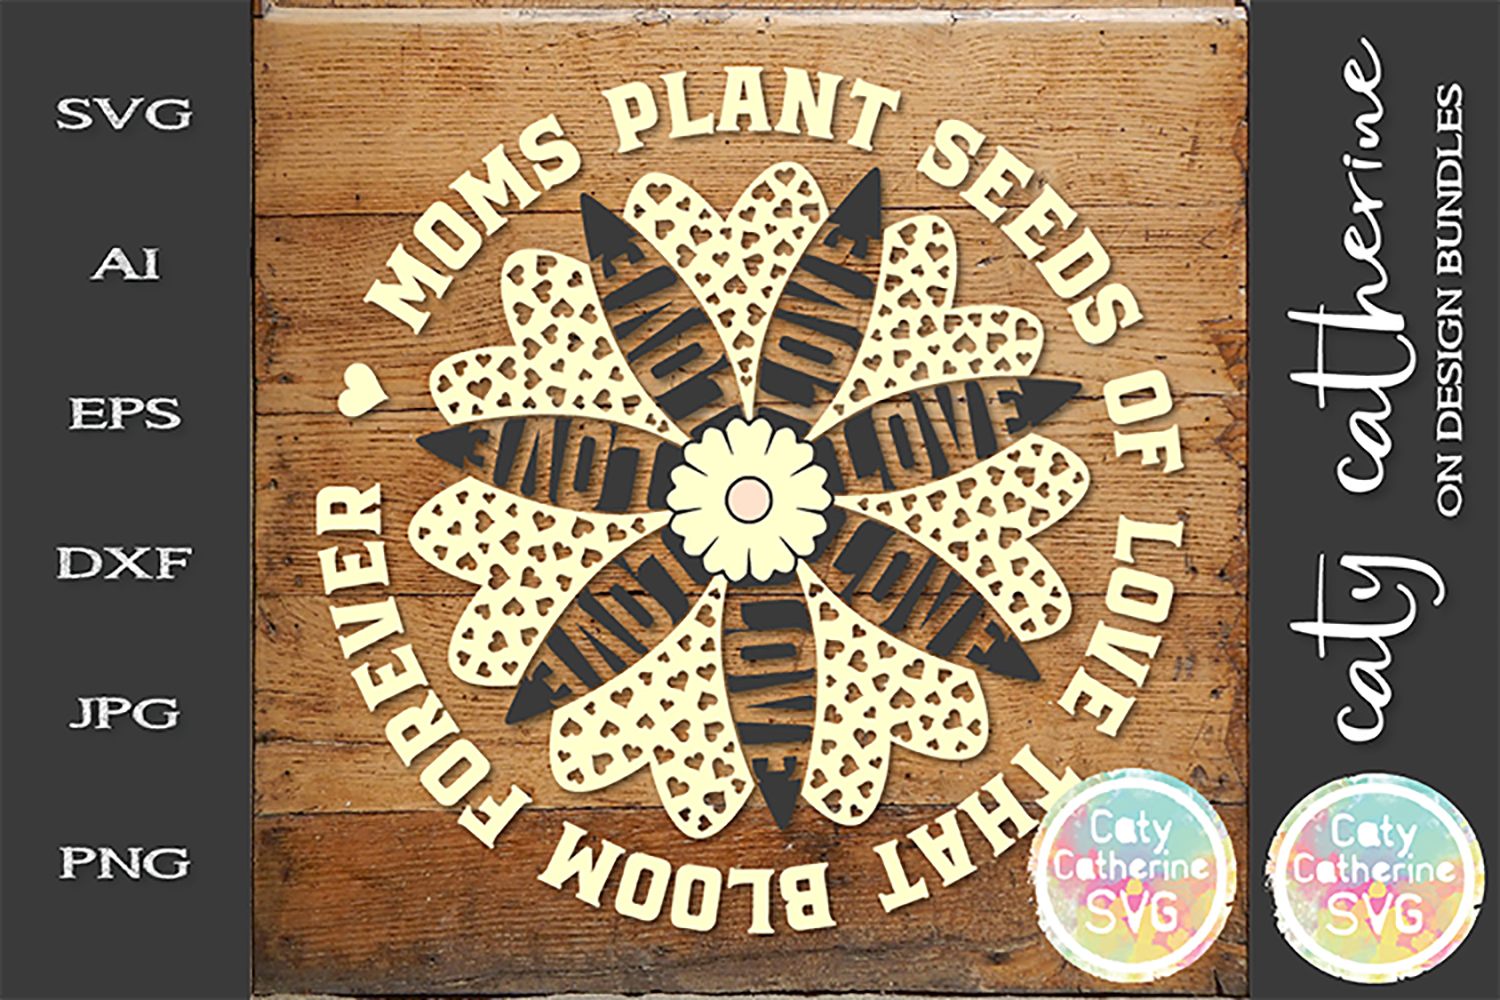 Moms Plant Seeds Of Love That Bloom Forever SVG Cut example image 1